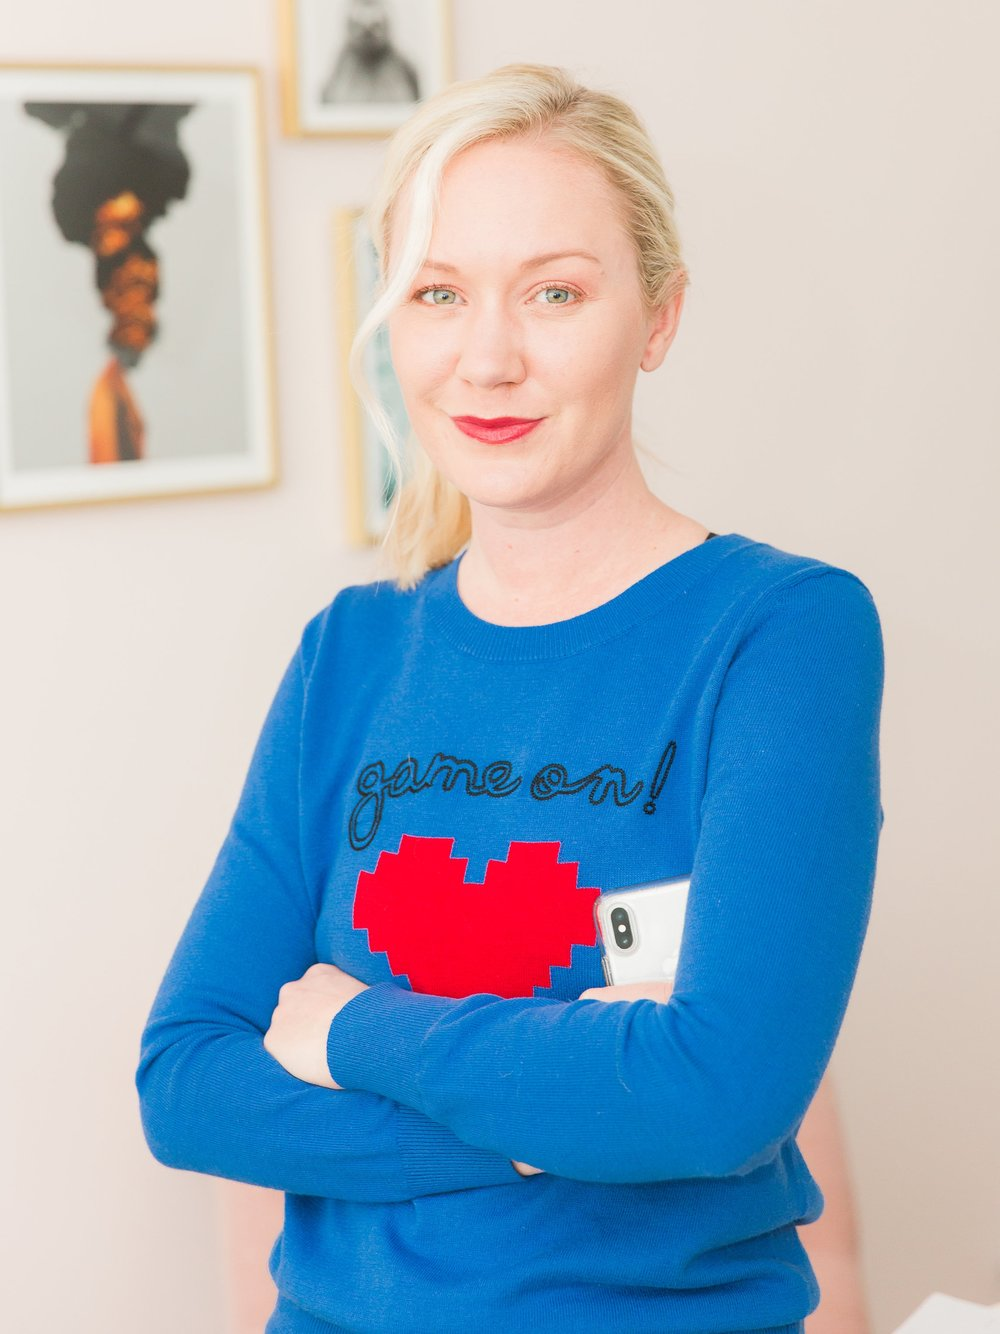 Beyond video games, - Audrey has vast experience working with popular lifestyle brands, CPGs and QSRs with expanded experience in event marketing, athlete activations, influencer engagement and social media management.